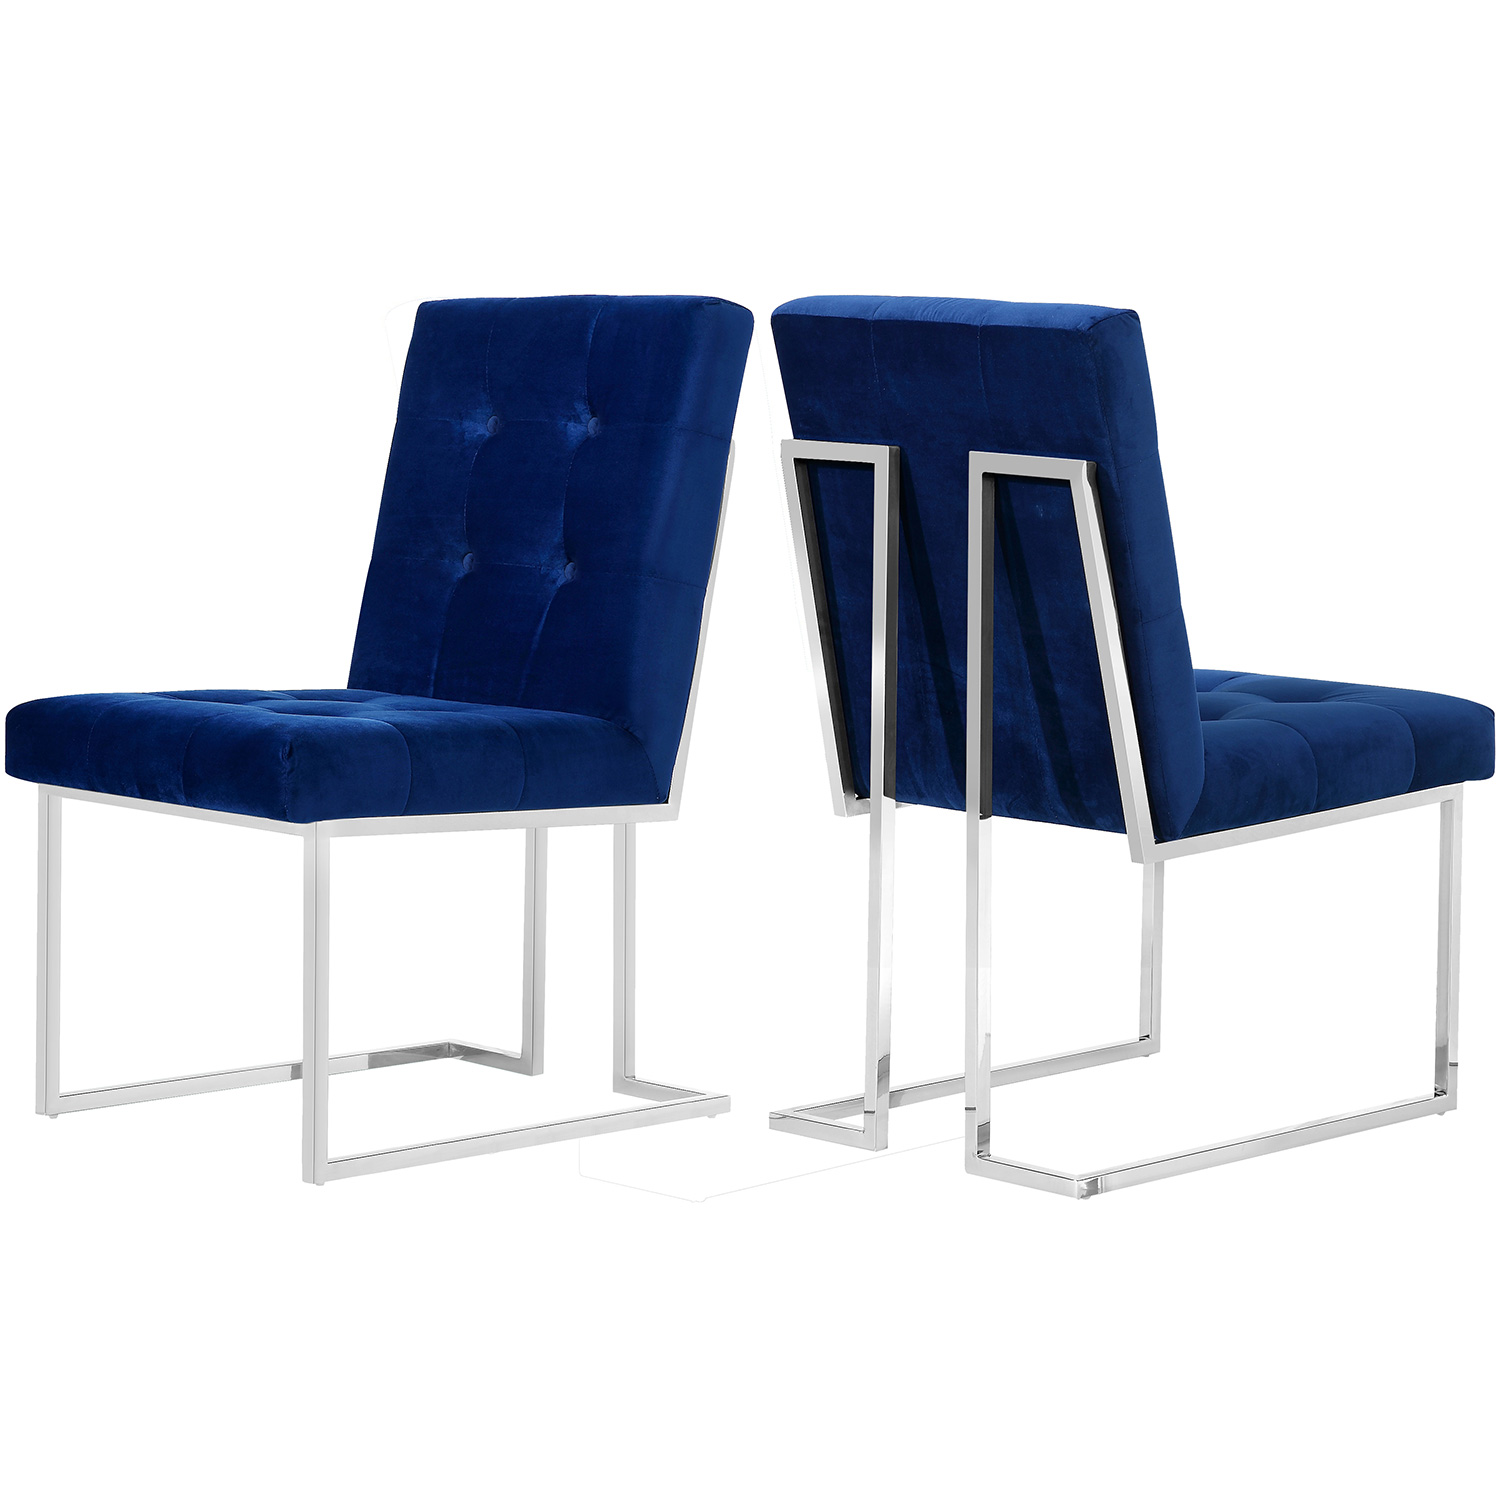 casual contemporary modern dining chairs at dynamic home decor